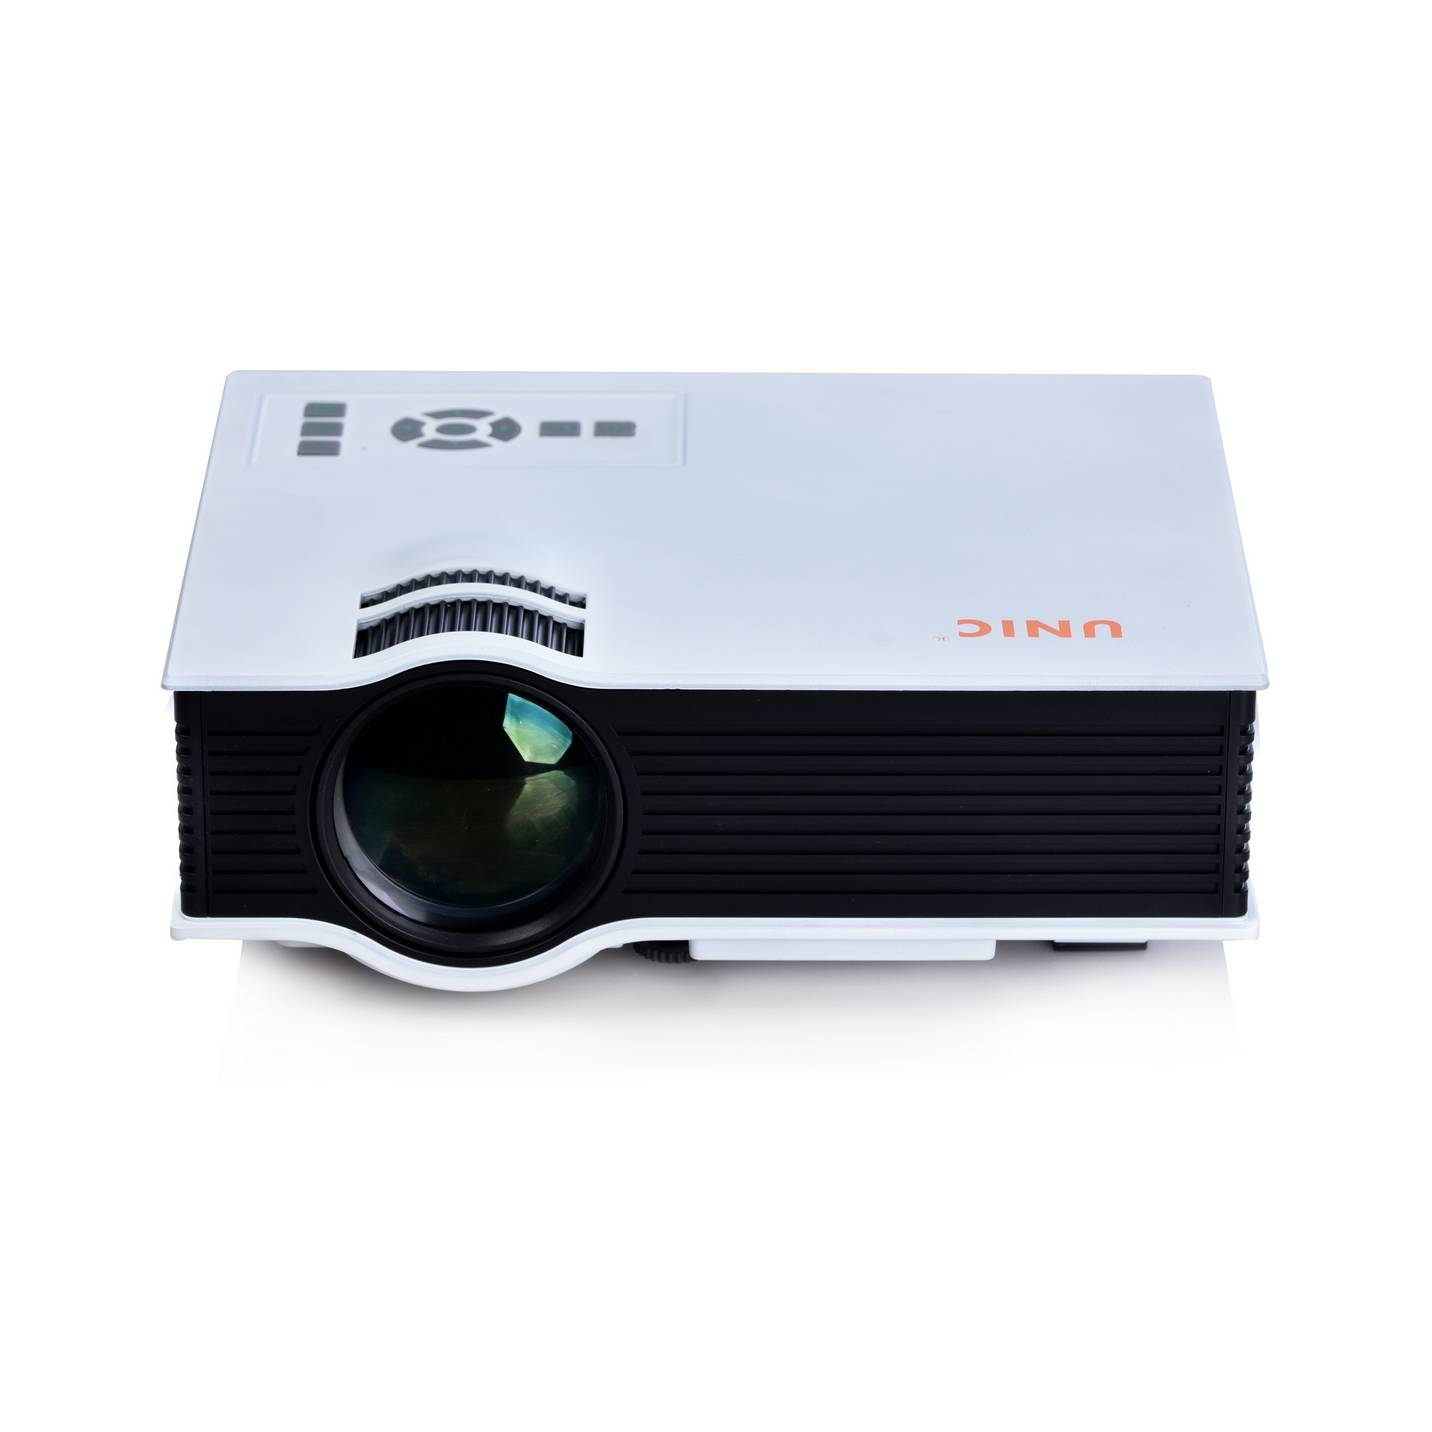 New hot sell led lcd mini projector with SD/USB/HDMI/TV(IP)/IR, support 1080P